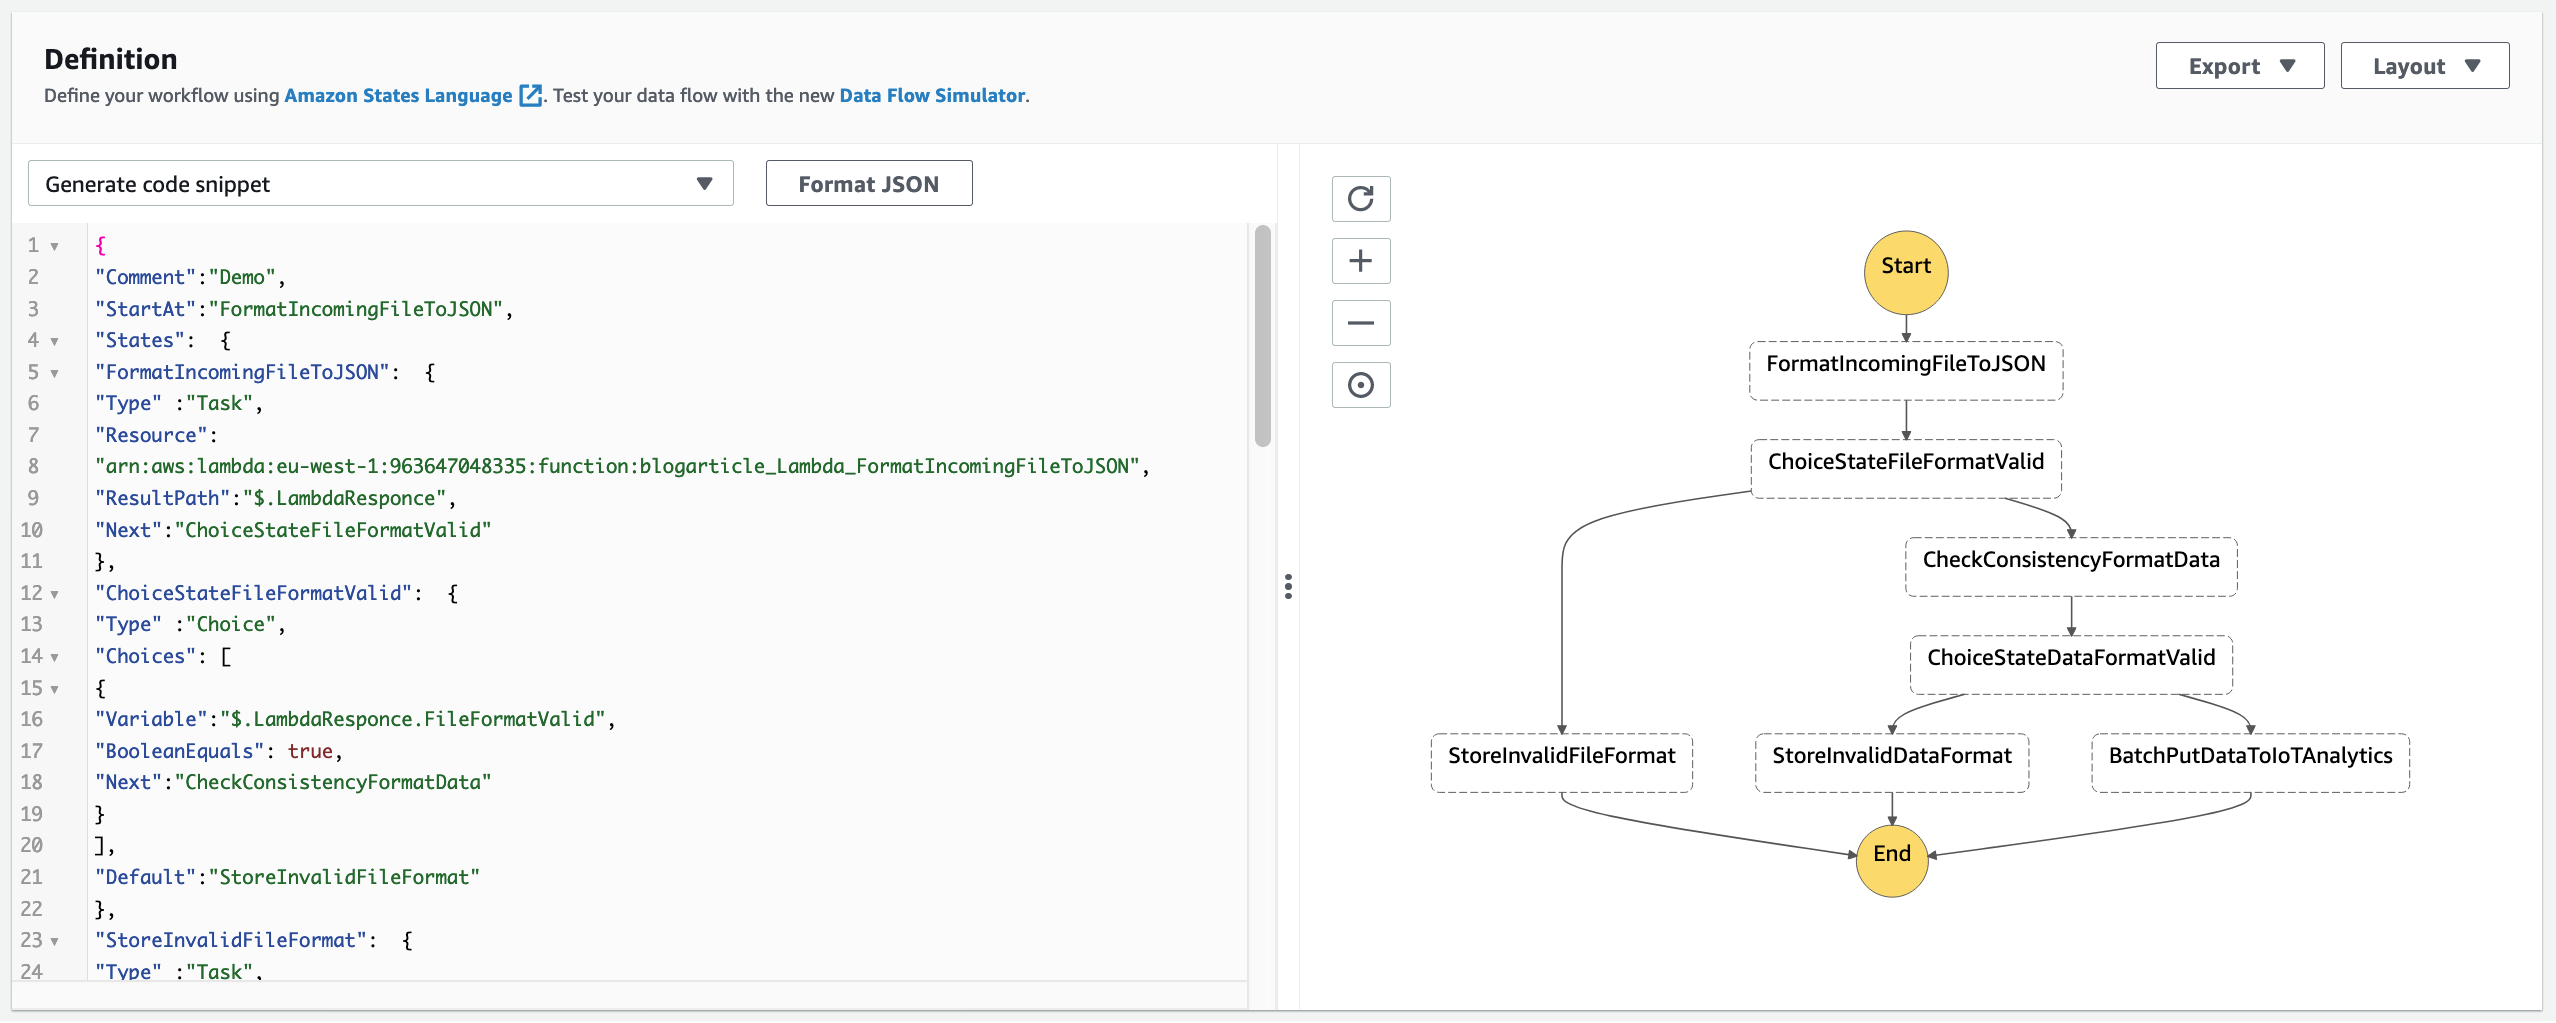 AWS Step Functions console